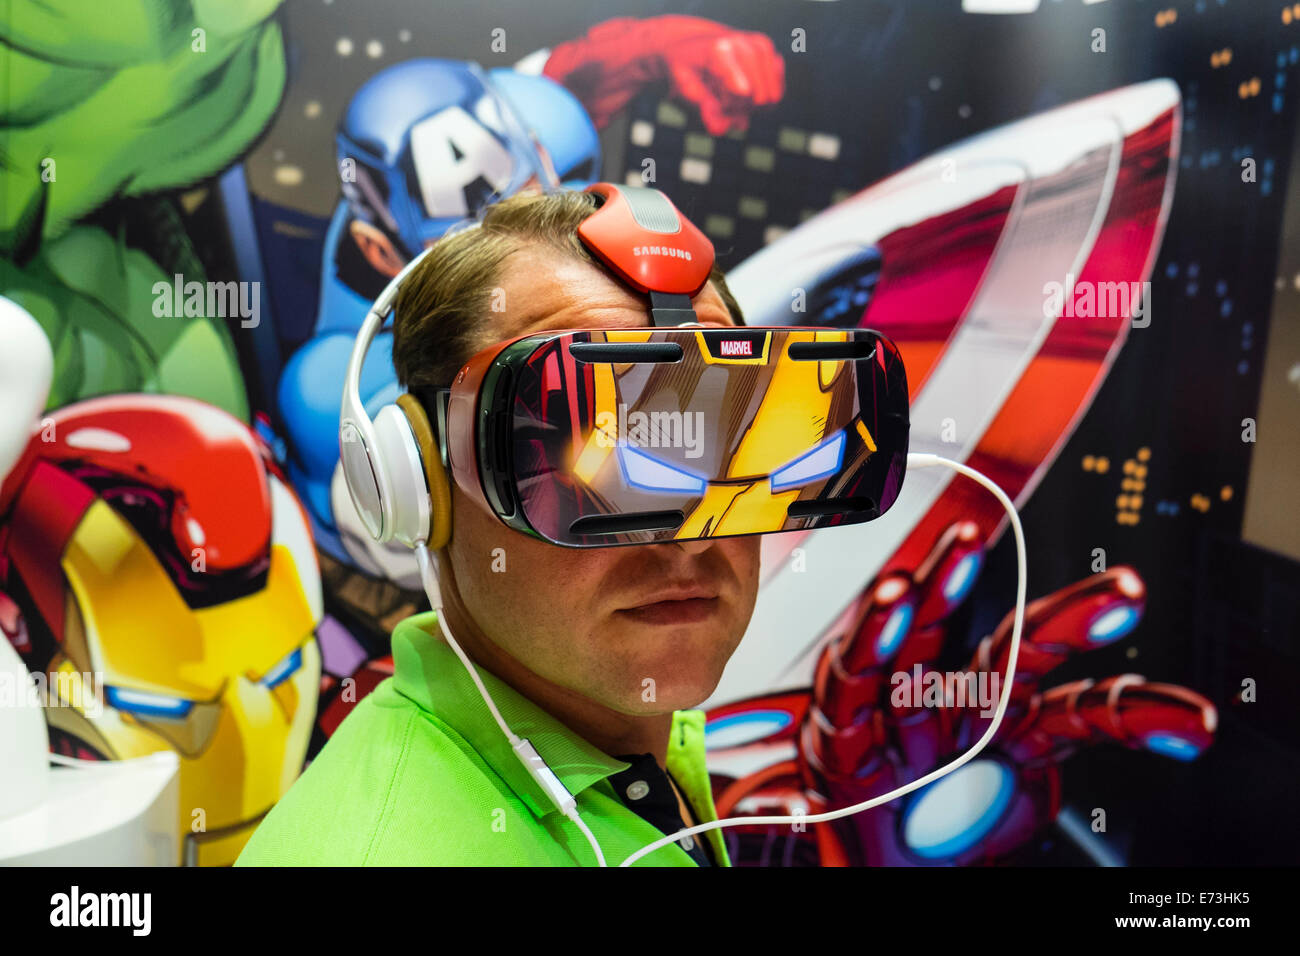 Berlin, Germany. 5th September, 2014. Visitor using Samsung Gear VR virtual reality headset launched at the IFA - Stock Image